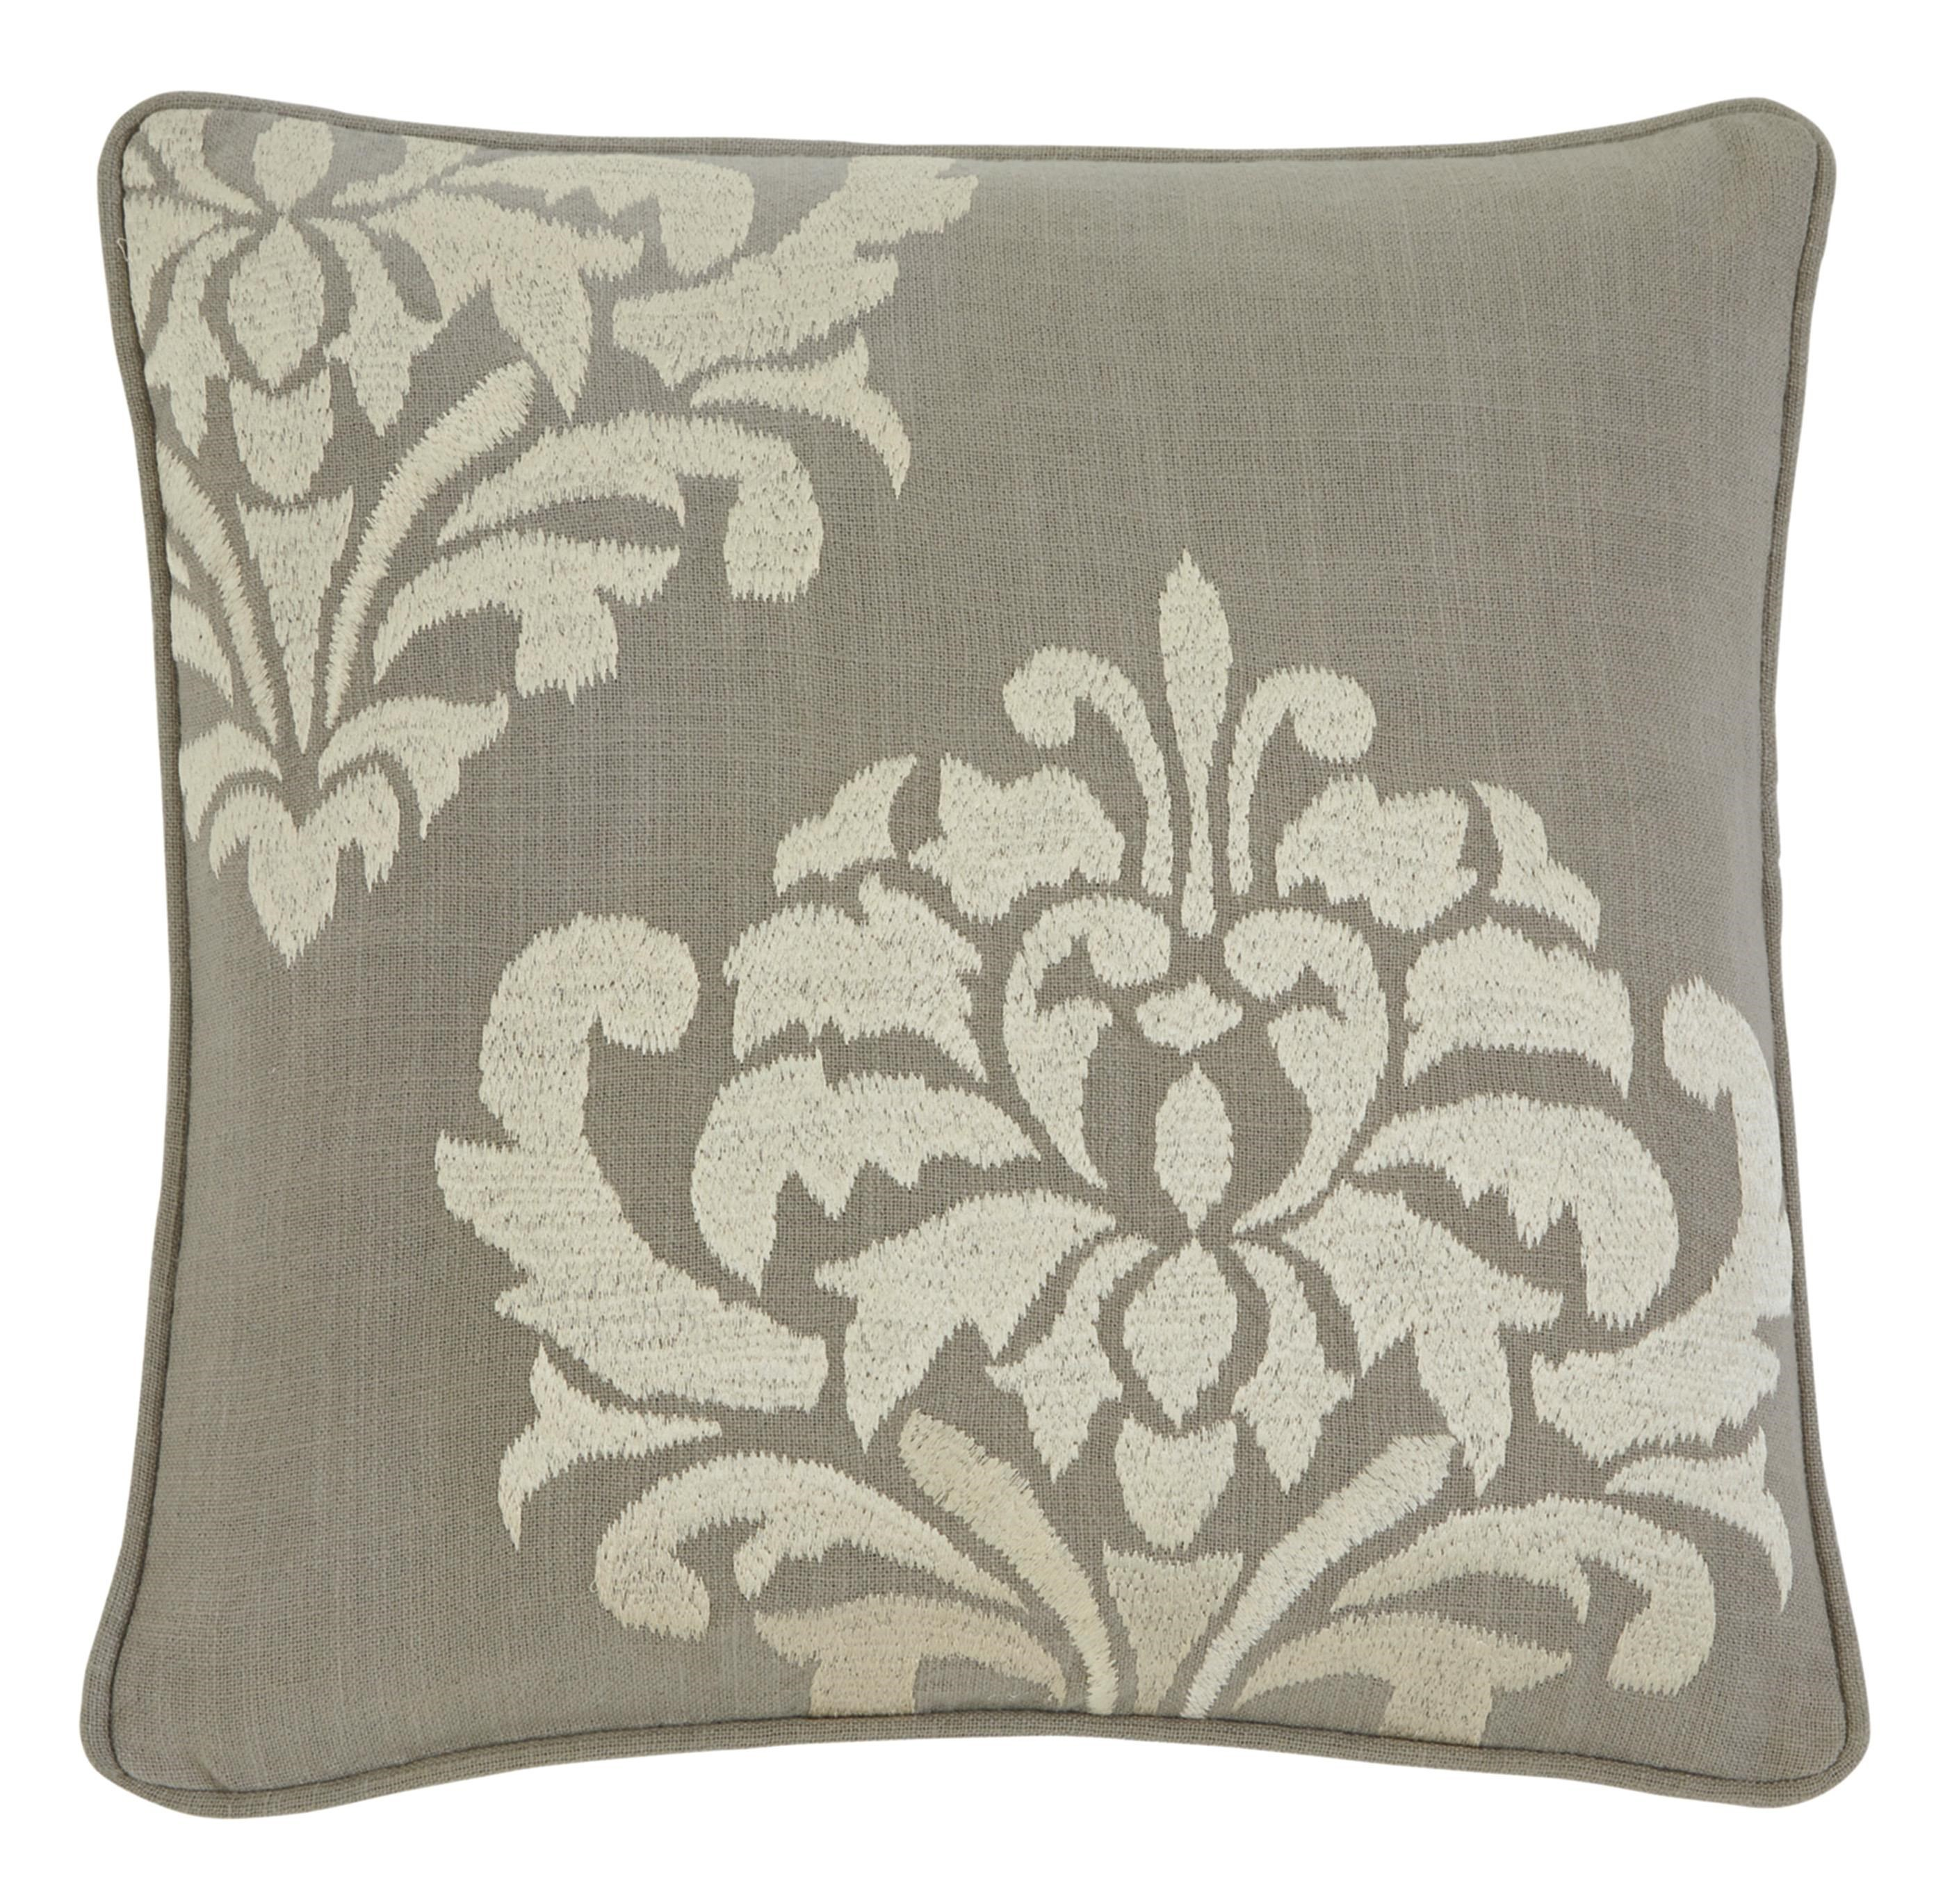 Signature Design by Ashley Furniture Pillows Damask Gray